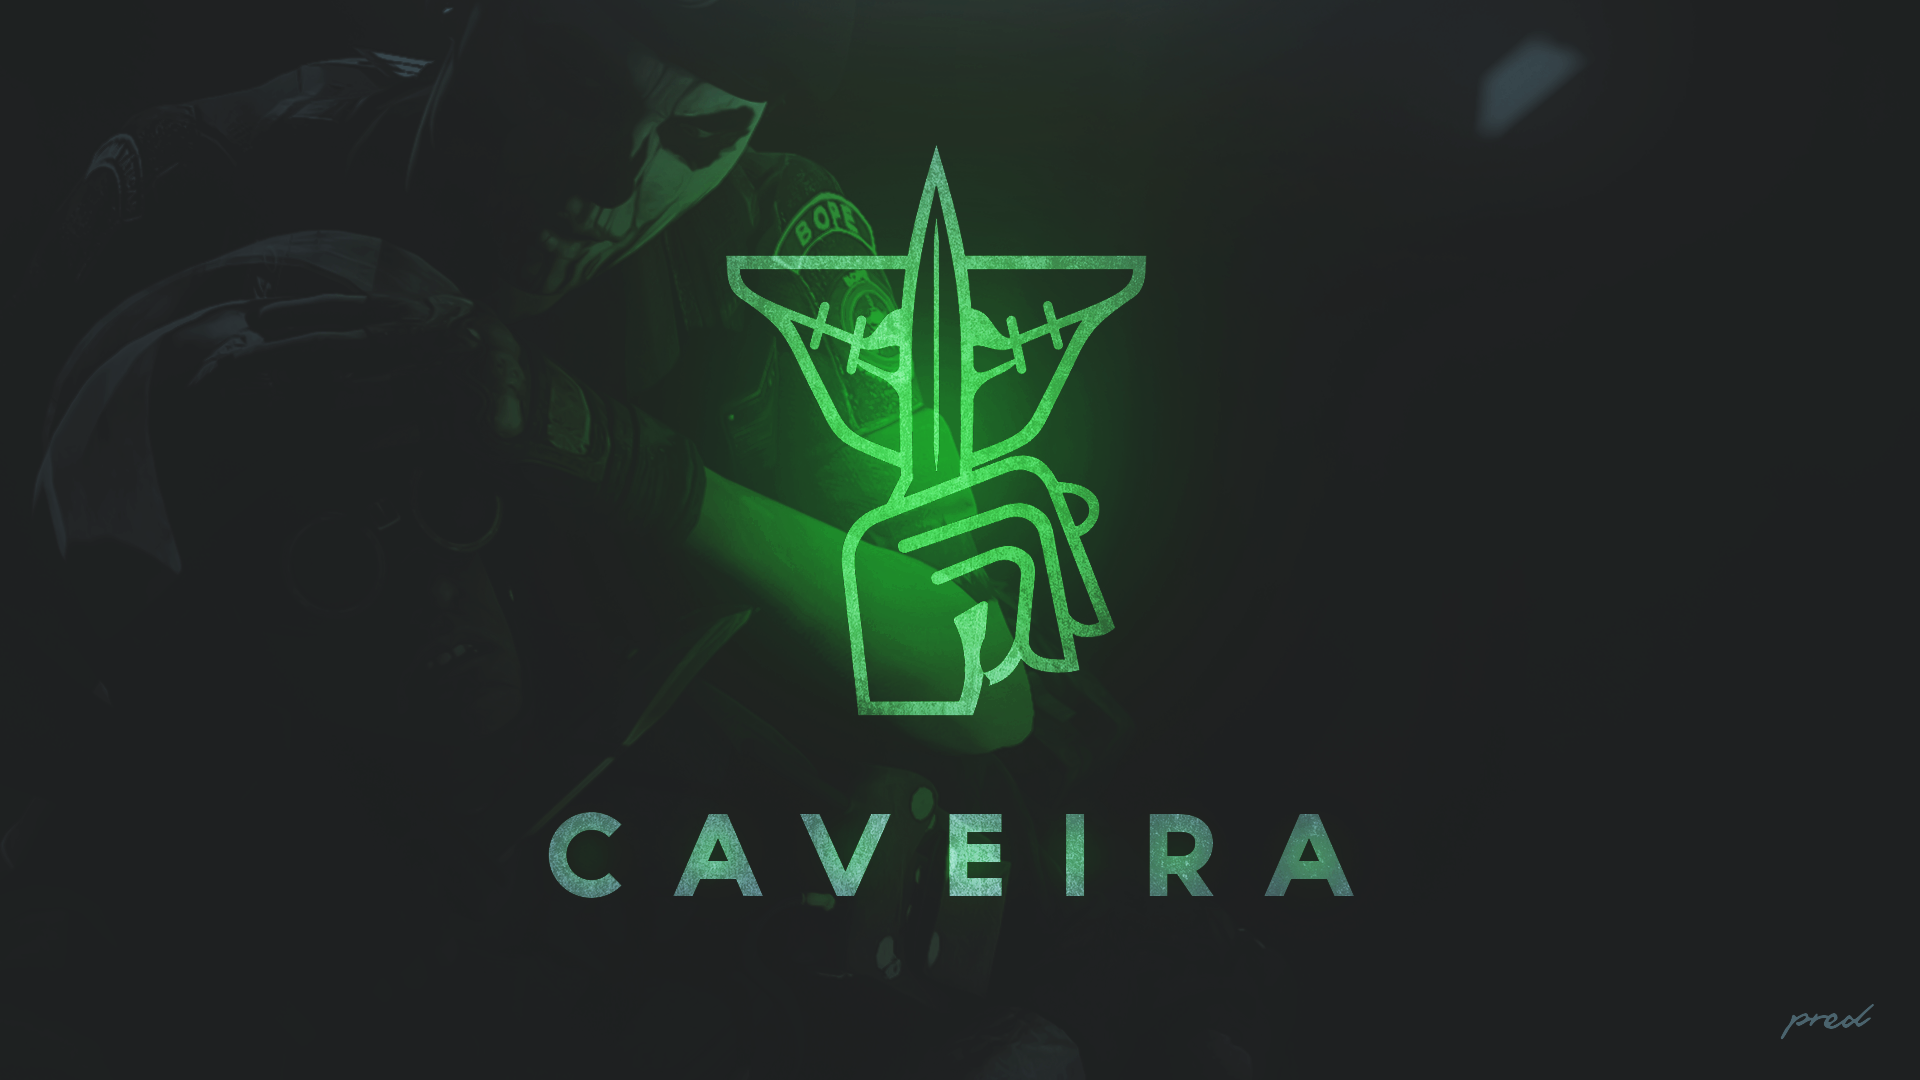 Caveira Wallpaper 1920x1080 Need Trendy Iphone7 Iphone7plus Case Check Out Https Ift Tt 2itgto5 With Images Neon Signs Iphone 7 Plus Wallpaper